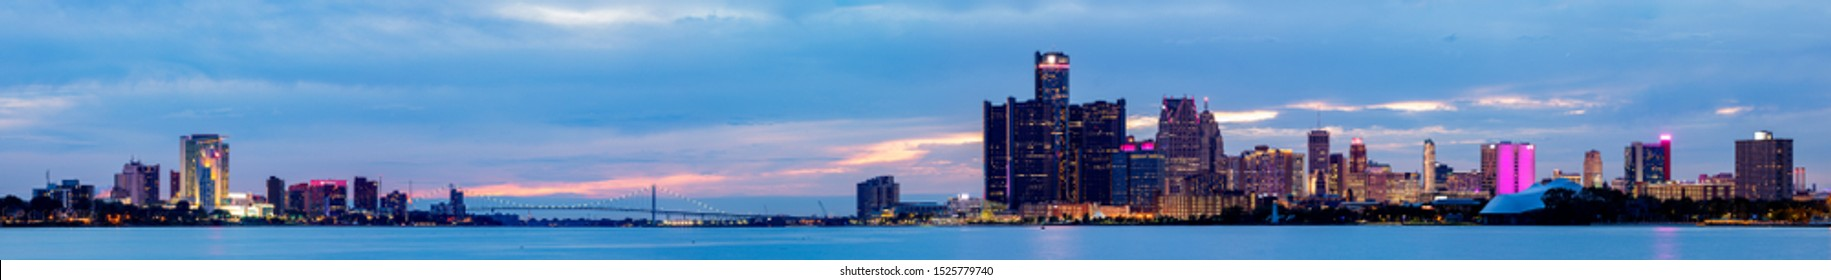 The Border Cities of Detroit, Michigan, United States of America, and Windsor, Ontario Province, Canada, connected by the Ambassador Bridge as seen from the Detroit River at Sunset